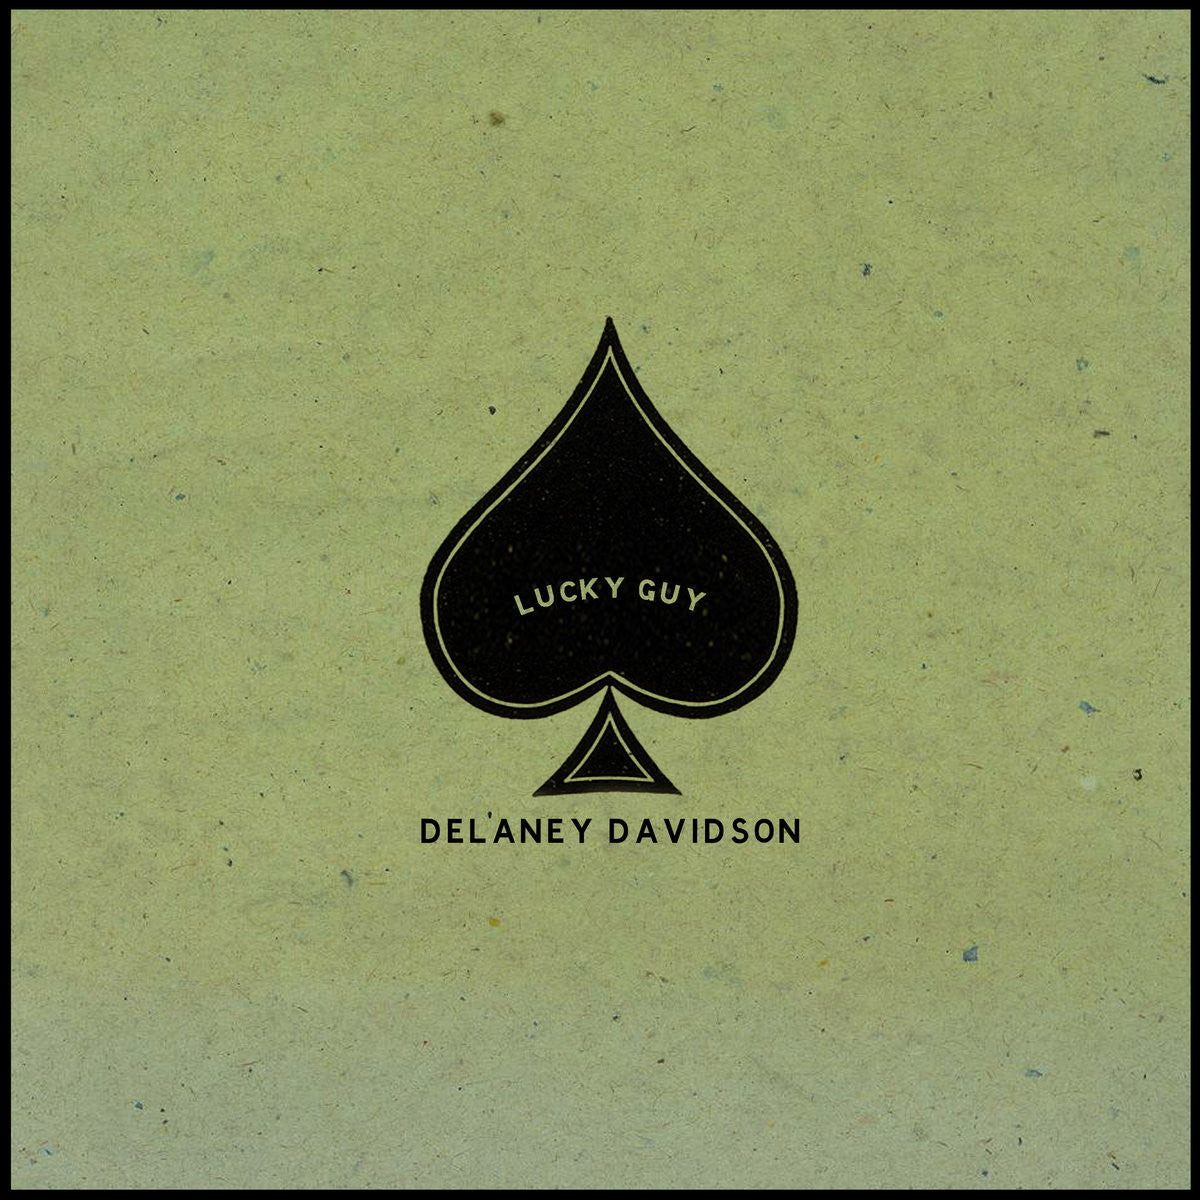 Delaney Davidson - Lucky Guy